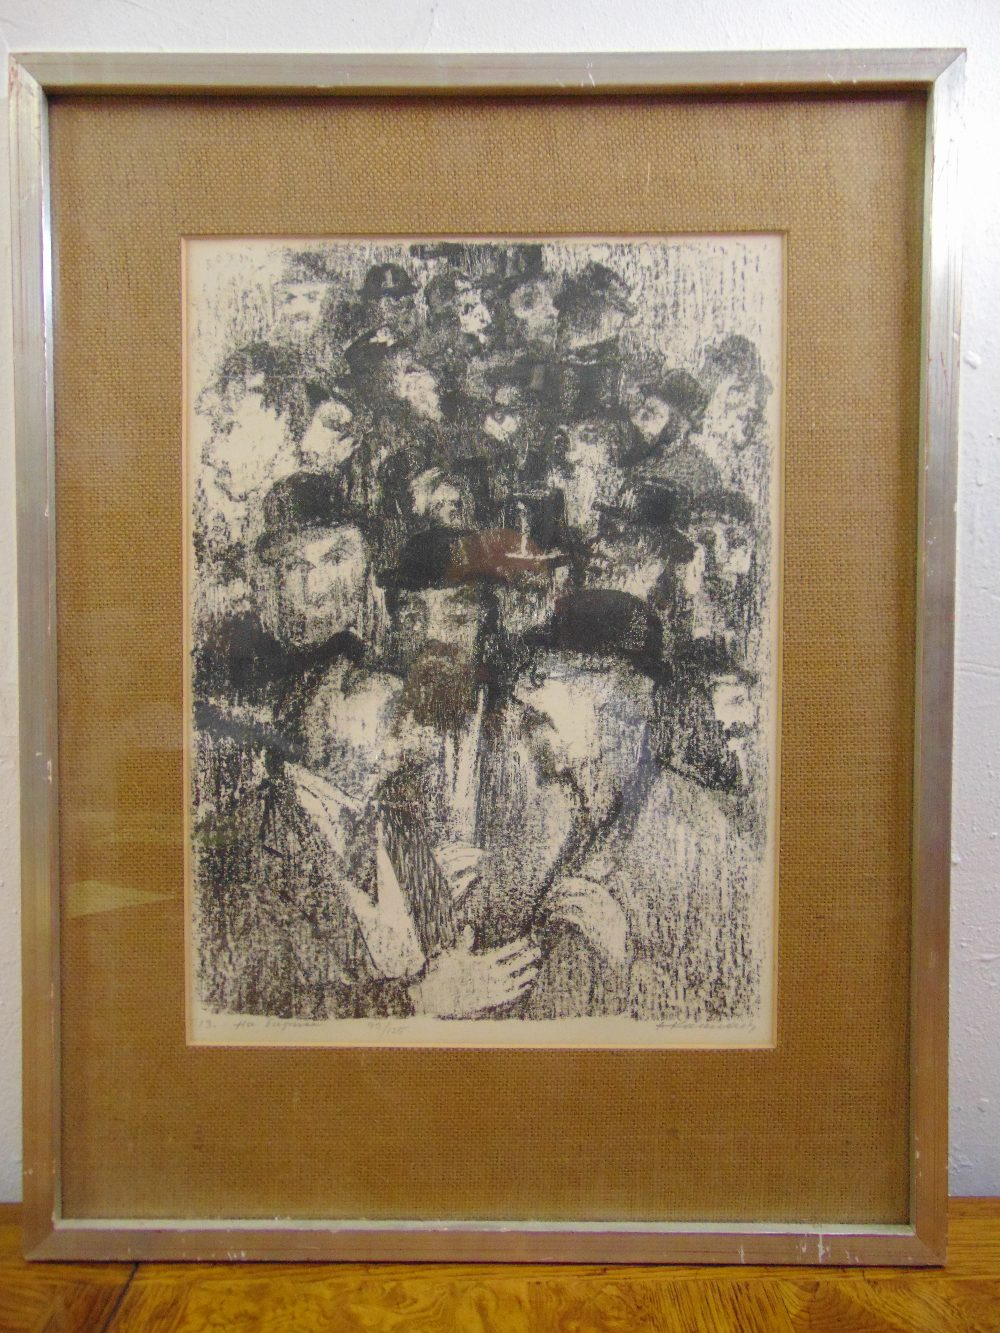 Lot 56 - Anatolij Lvovic Kaplan 1902-1980 framed and glazed monochromatic limited edition lithograph 93/